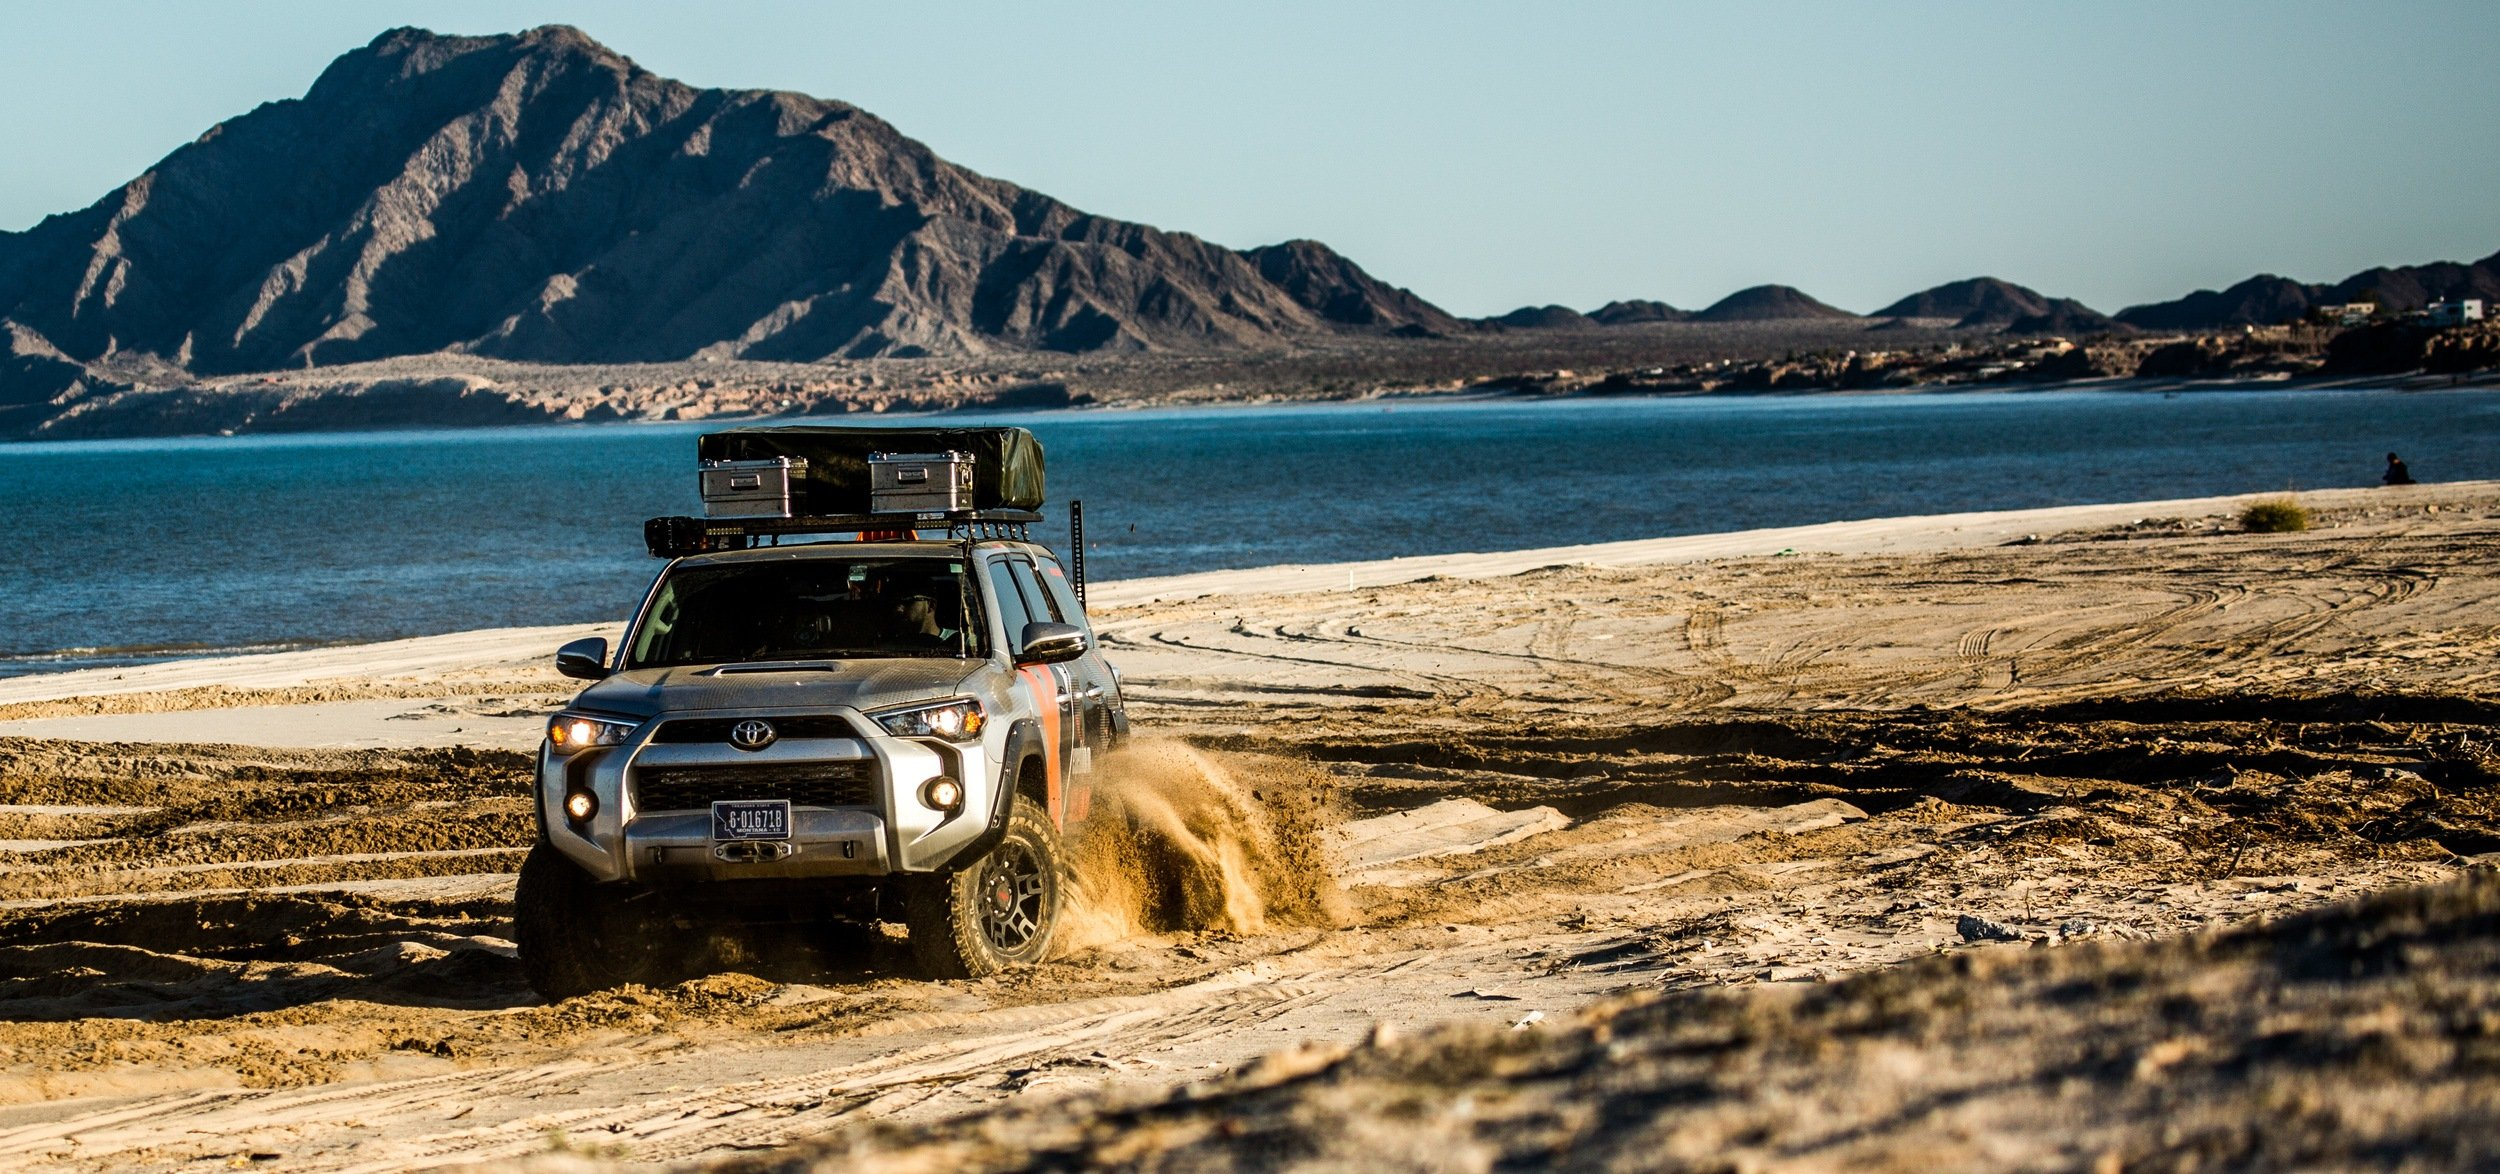 Toyota Tacoma Overland Build >> 2015 Toyota 4Runner Builds - Expedition Overland